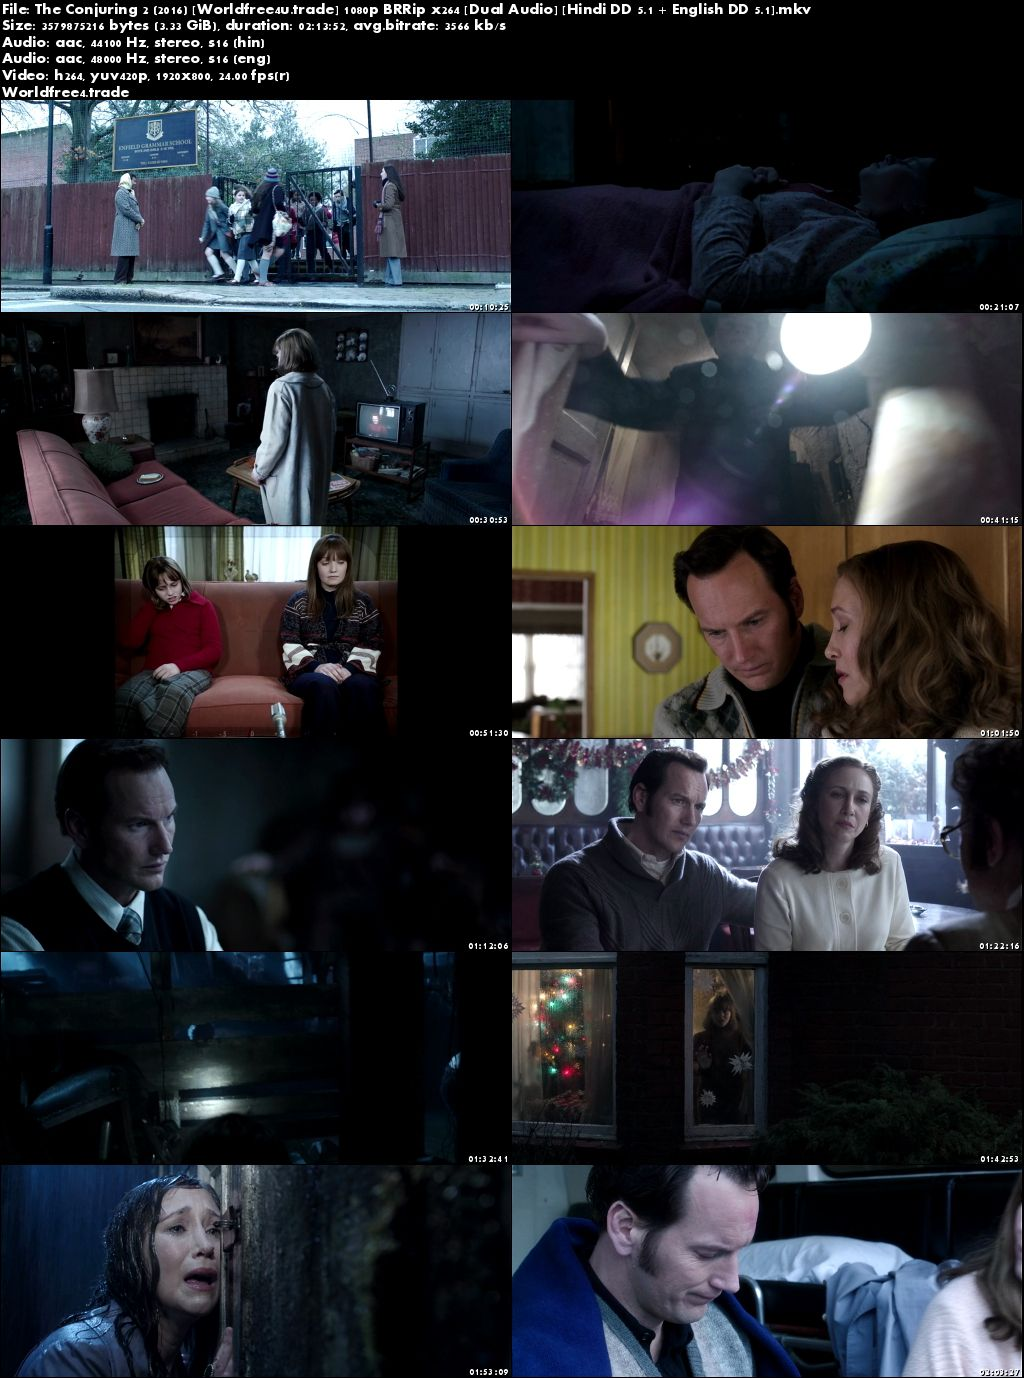 Screen Shoot of The Conjuring 2 2016 BRRip 1080p Dual Audio In Hindi English